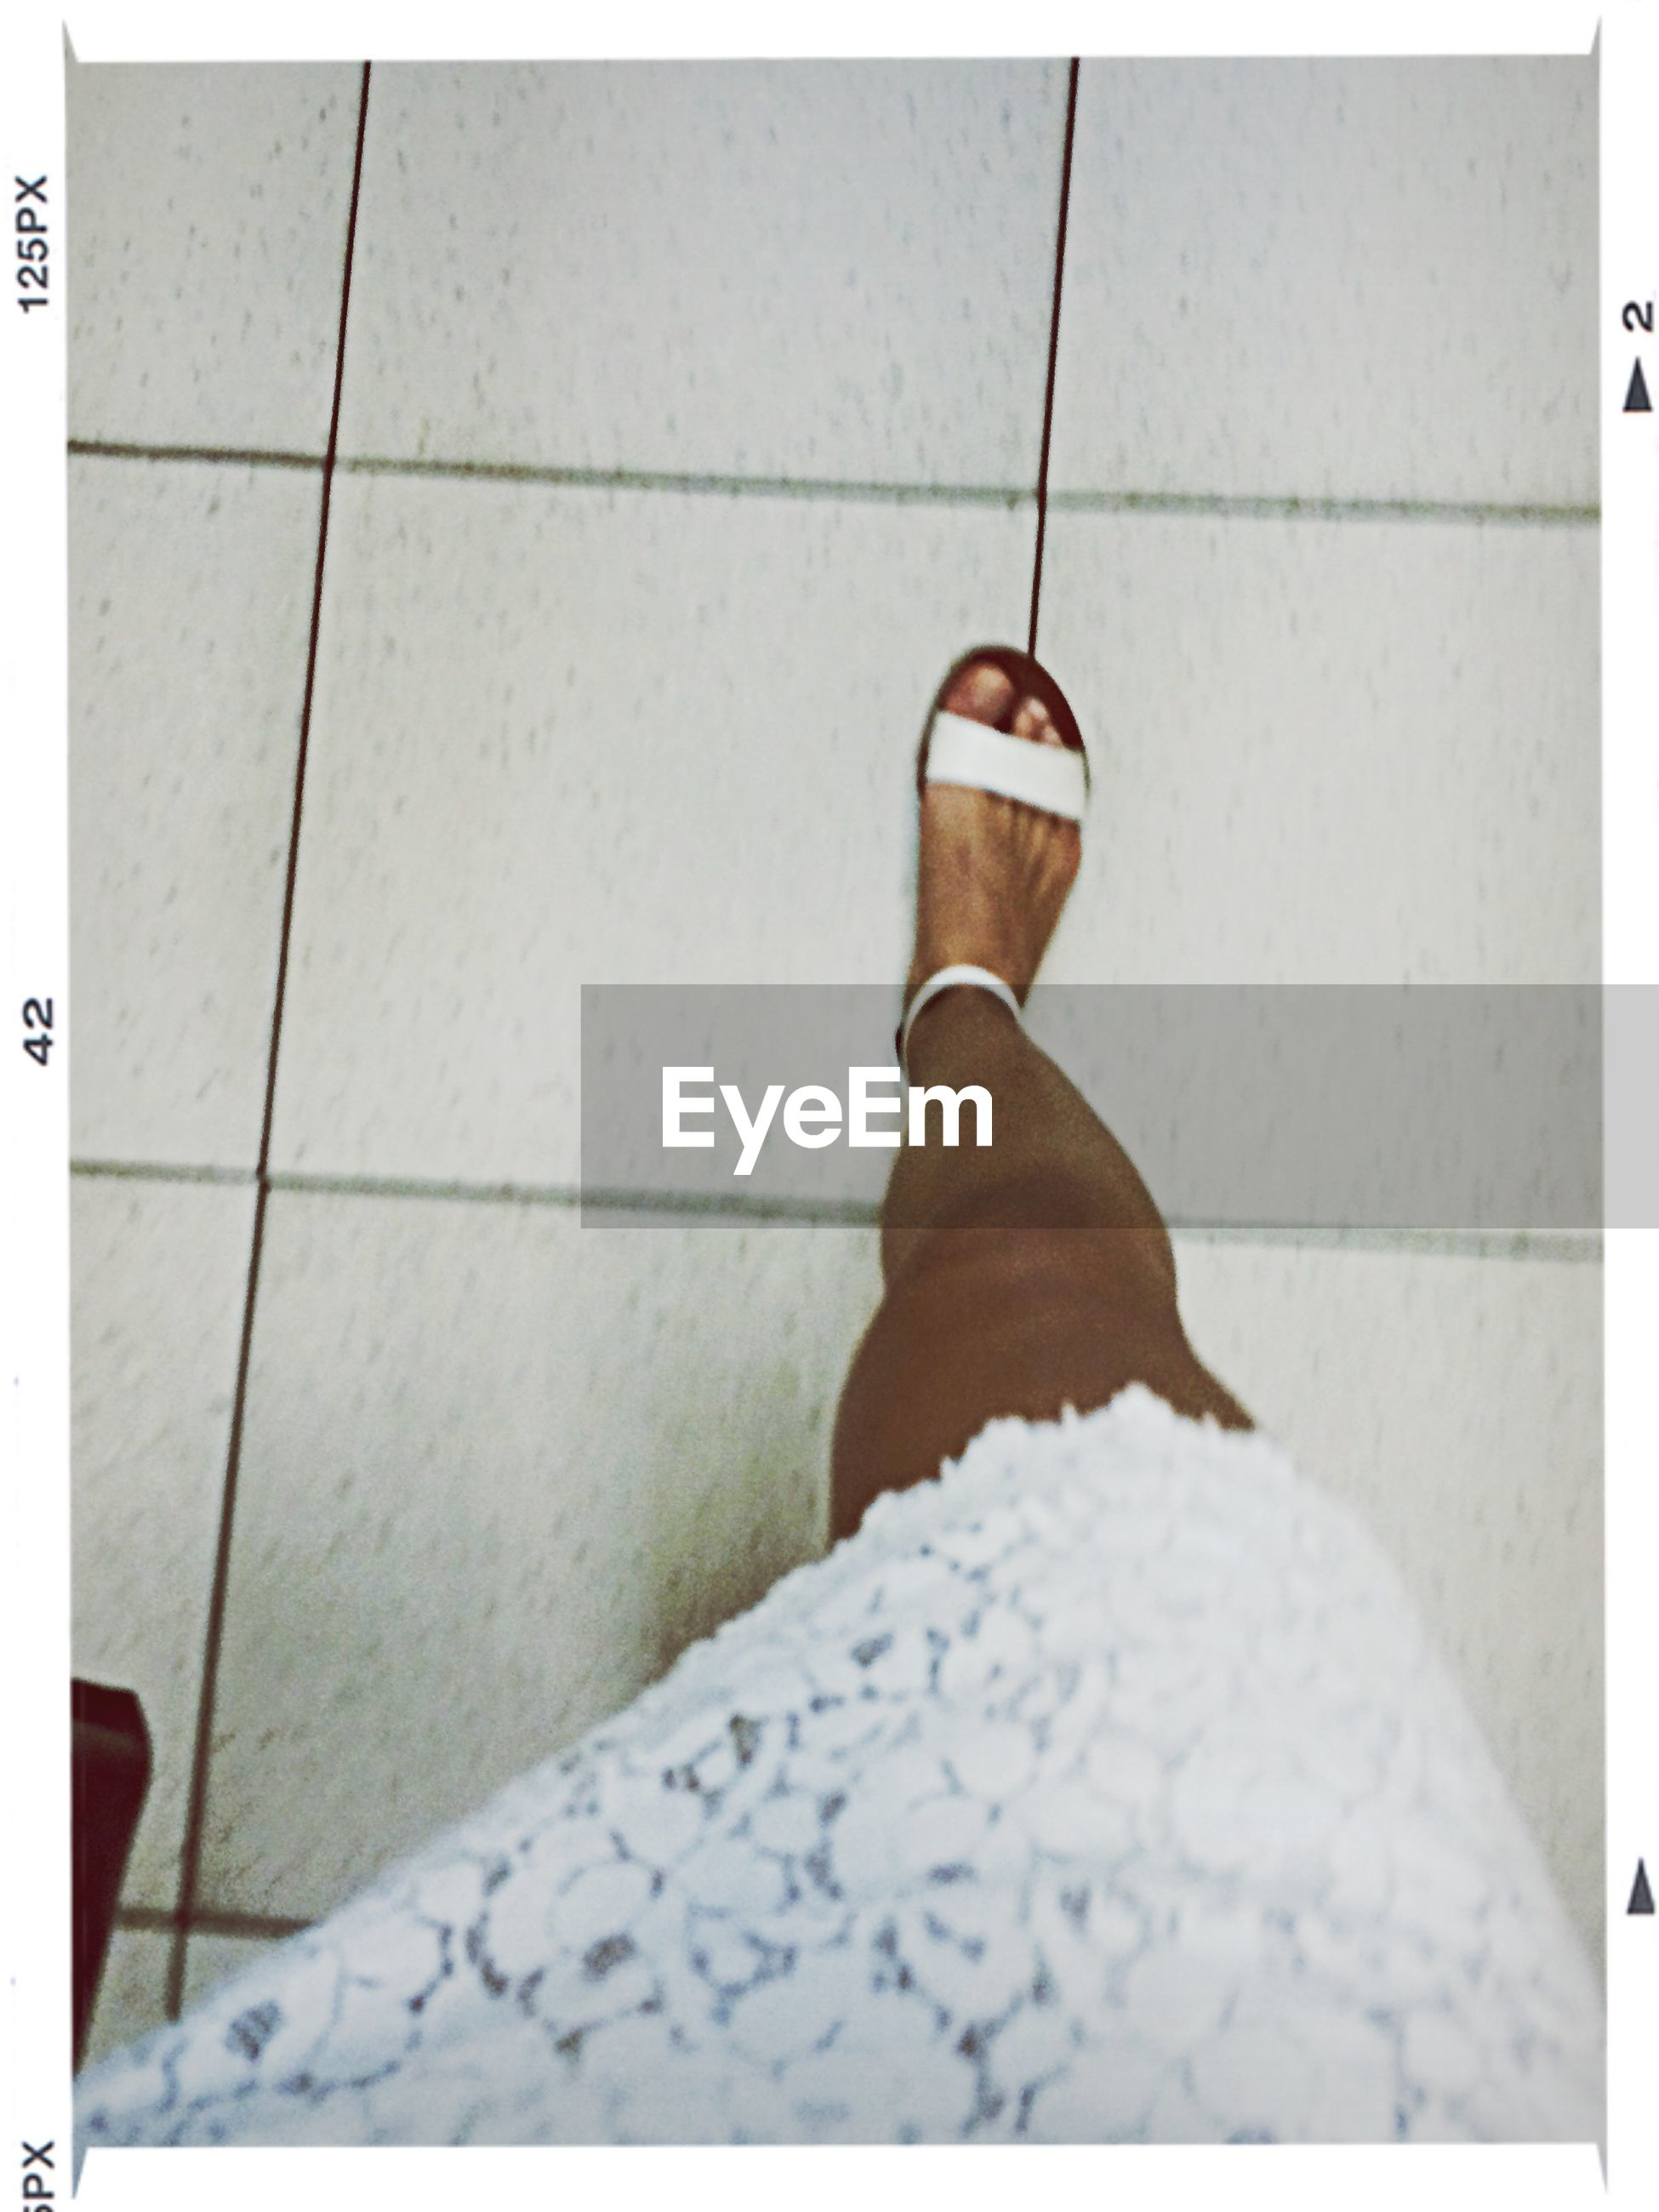 tiled floor, low section, transfer print, shoe, flooring, person, tile, auto post production filter, indoors, footwear, white color, high angle view, wall - building feature, floor, sidewalk, standing, shadow, personal perspective